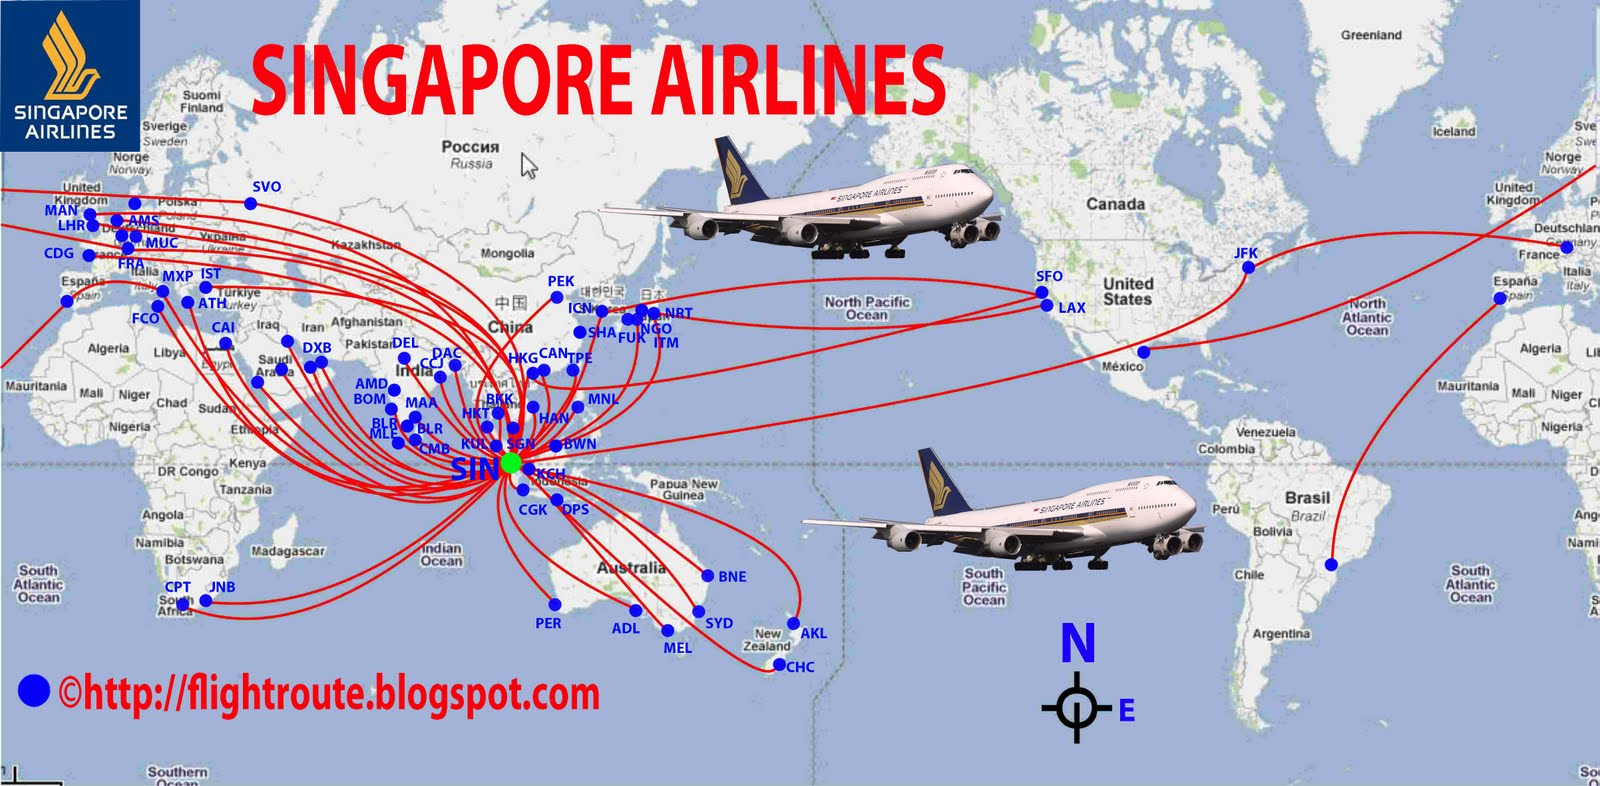 transportspot: Singapore Airlines routes map